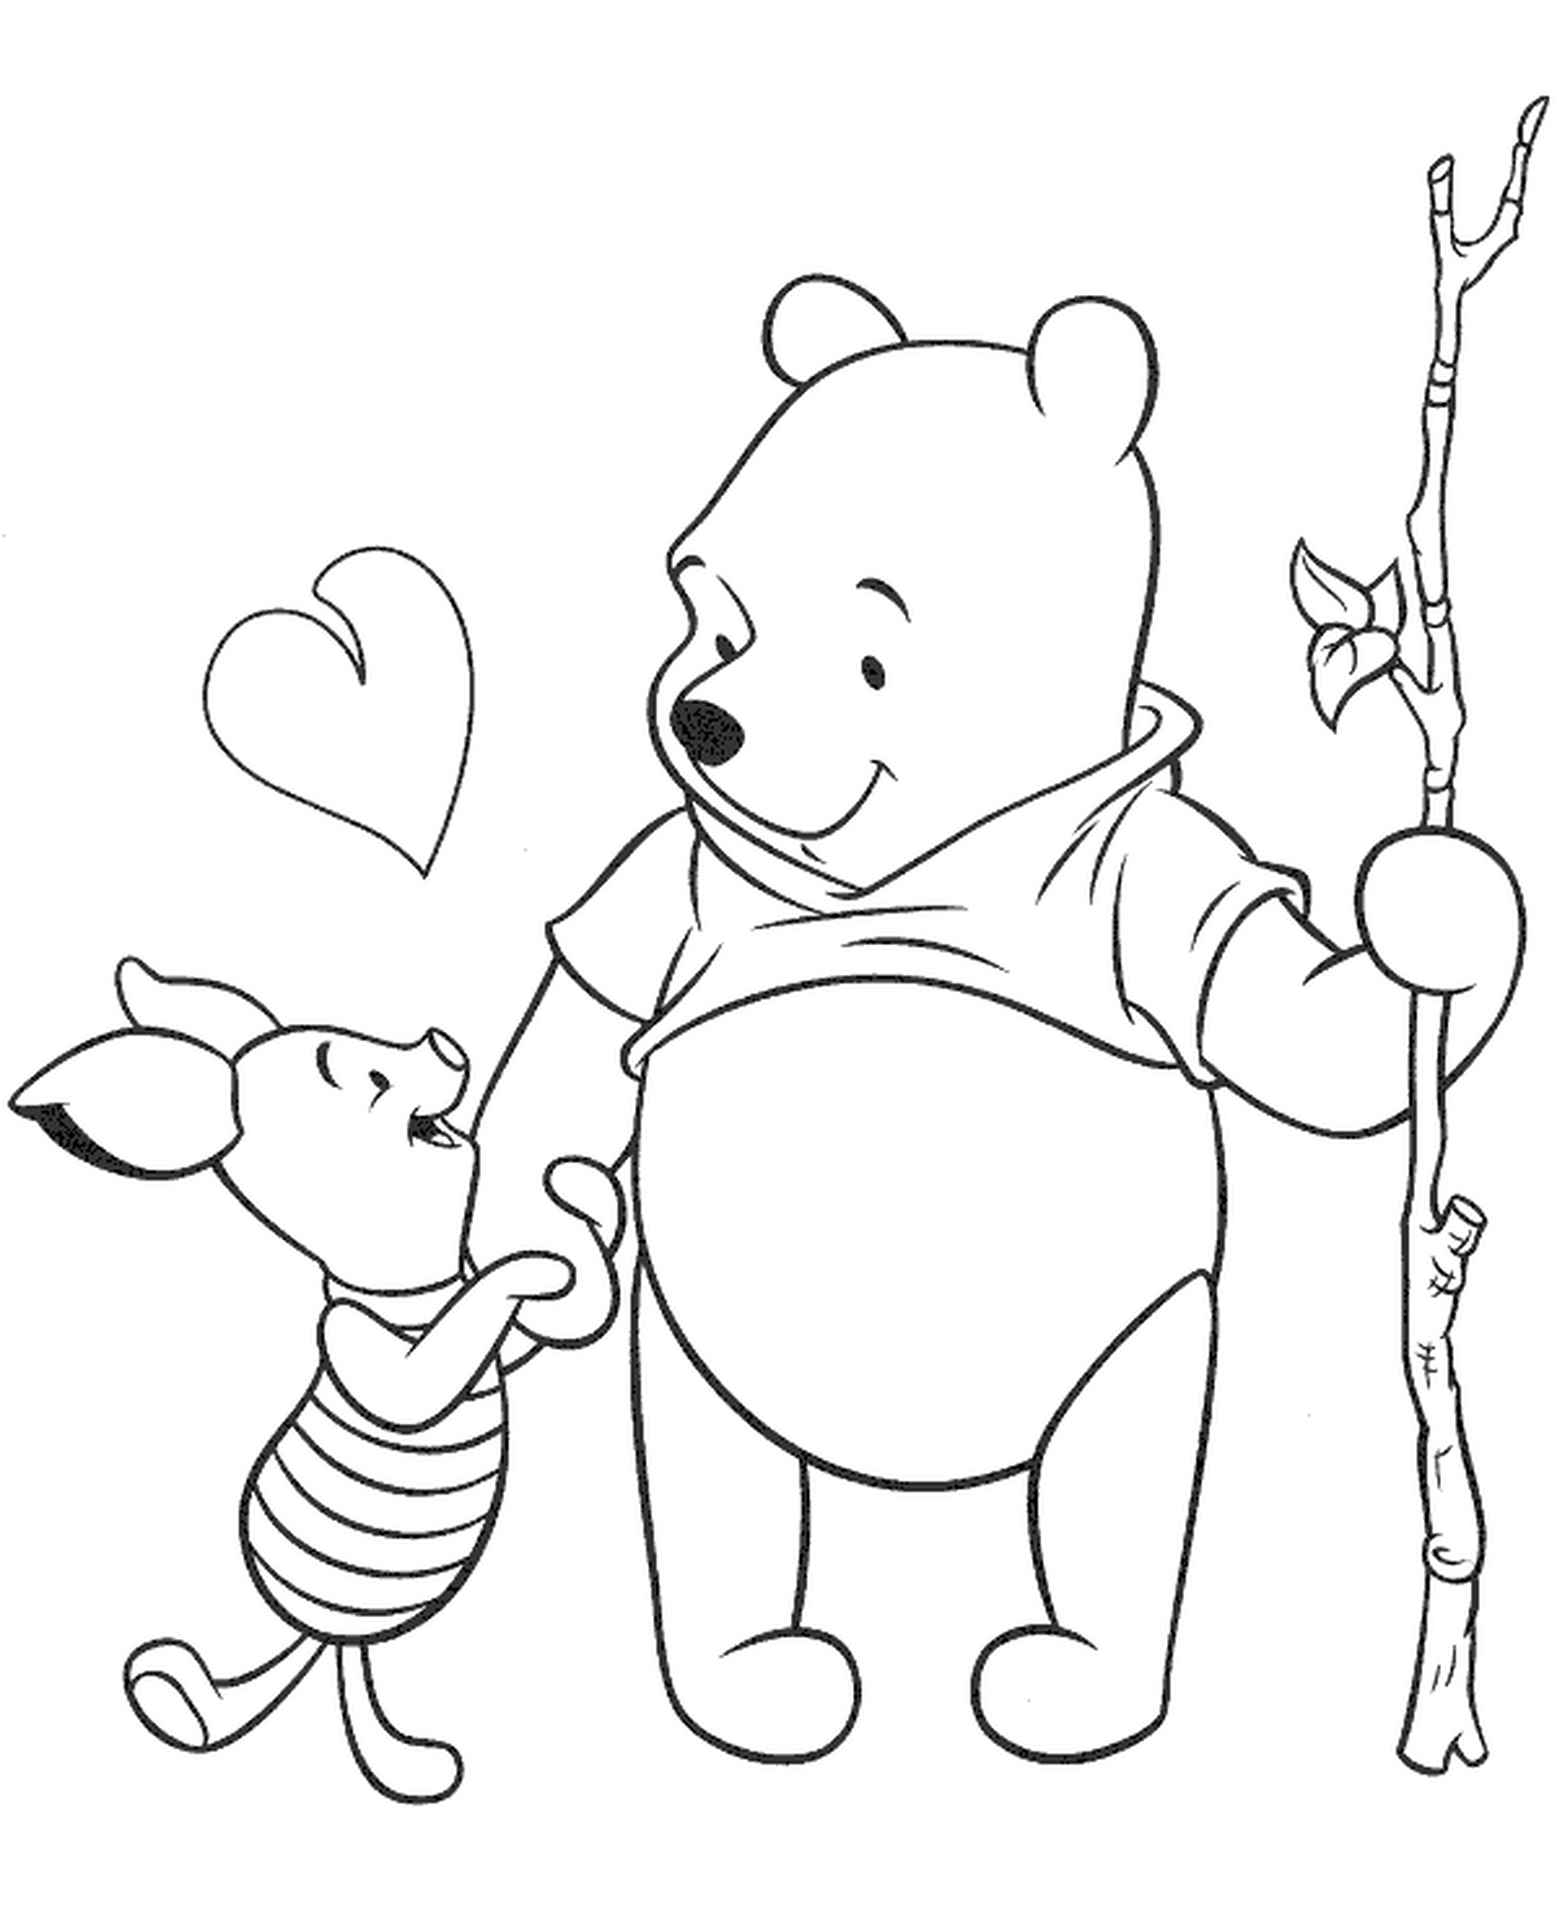 Big Pooh And Piglet Coloring Page